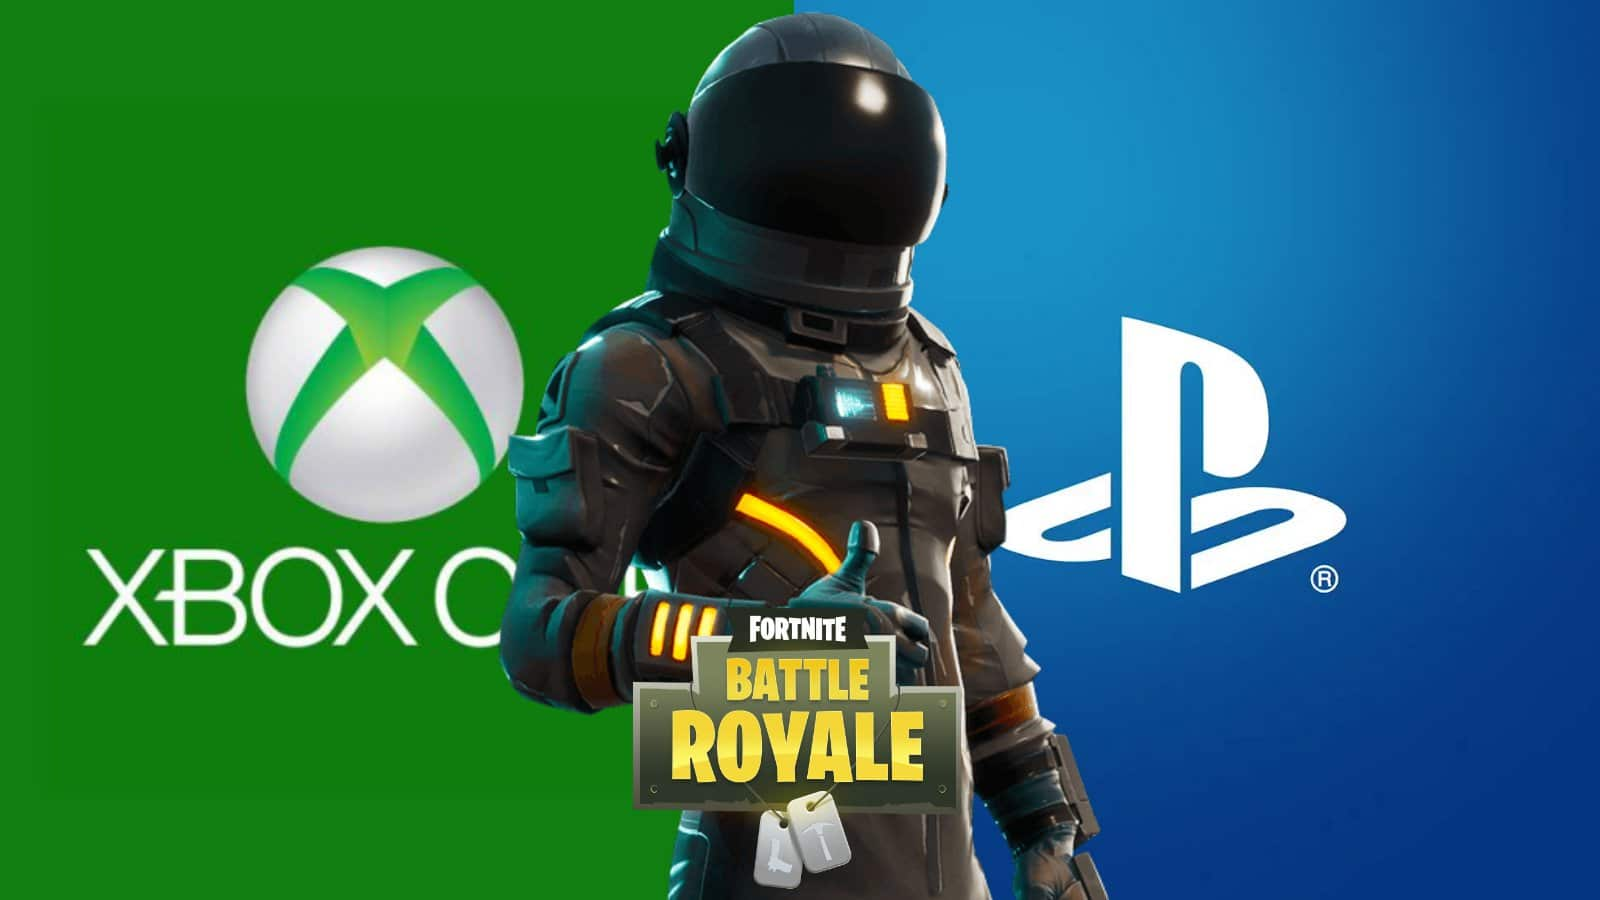 Fortnite Ps4 Gbs What Is The Download Size Of The Fortnite Battle Royale On Pc Ps4 Xbox One Mobile Fortnite Battle Royale